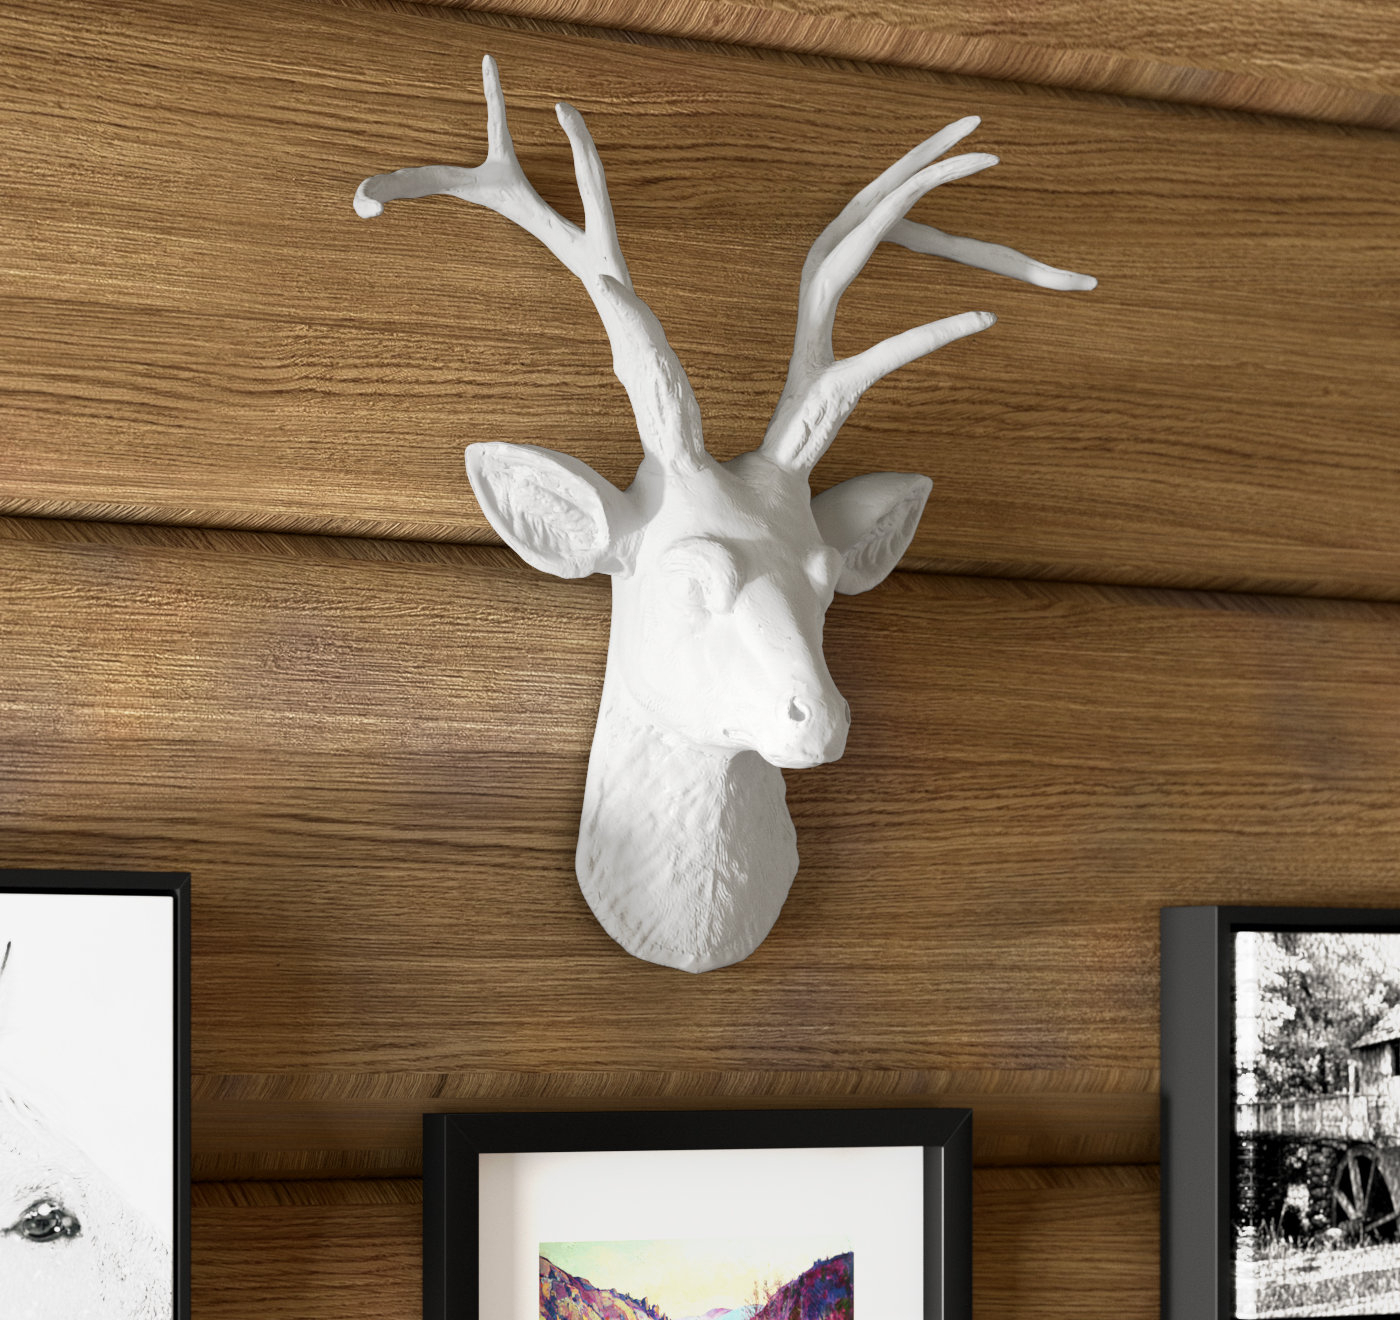 Cottage Faux Deer Head Wall Décor Intended For Highlands Ranch The Templeton Wall Decor (View 13 of 30)